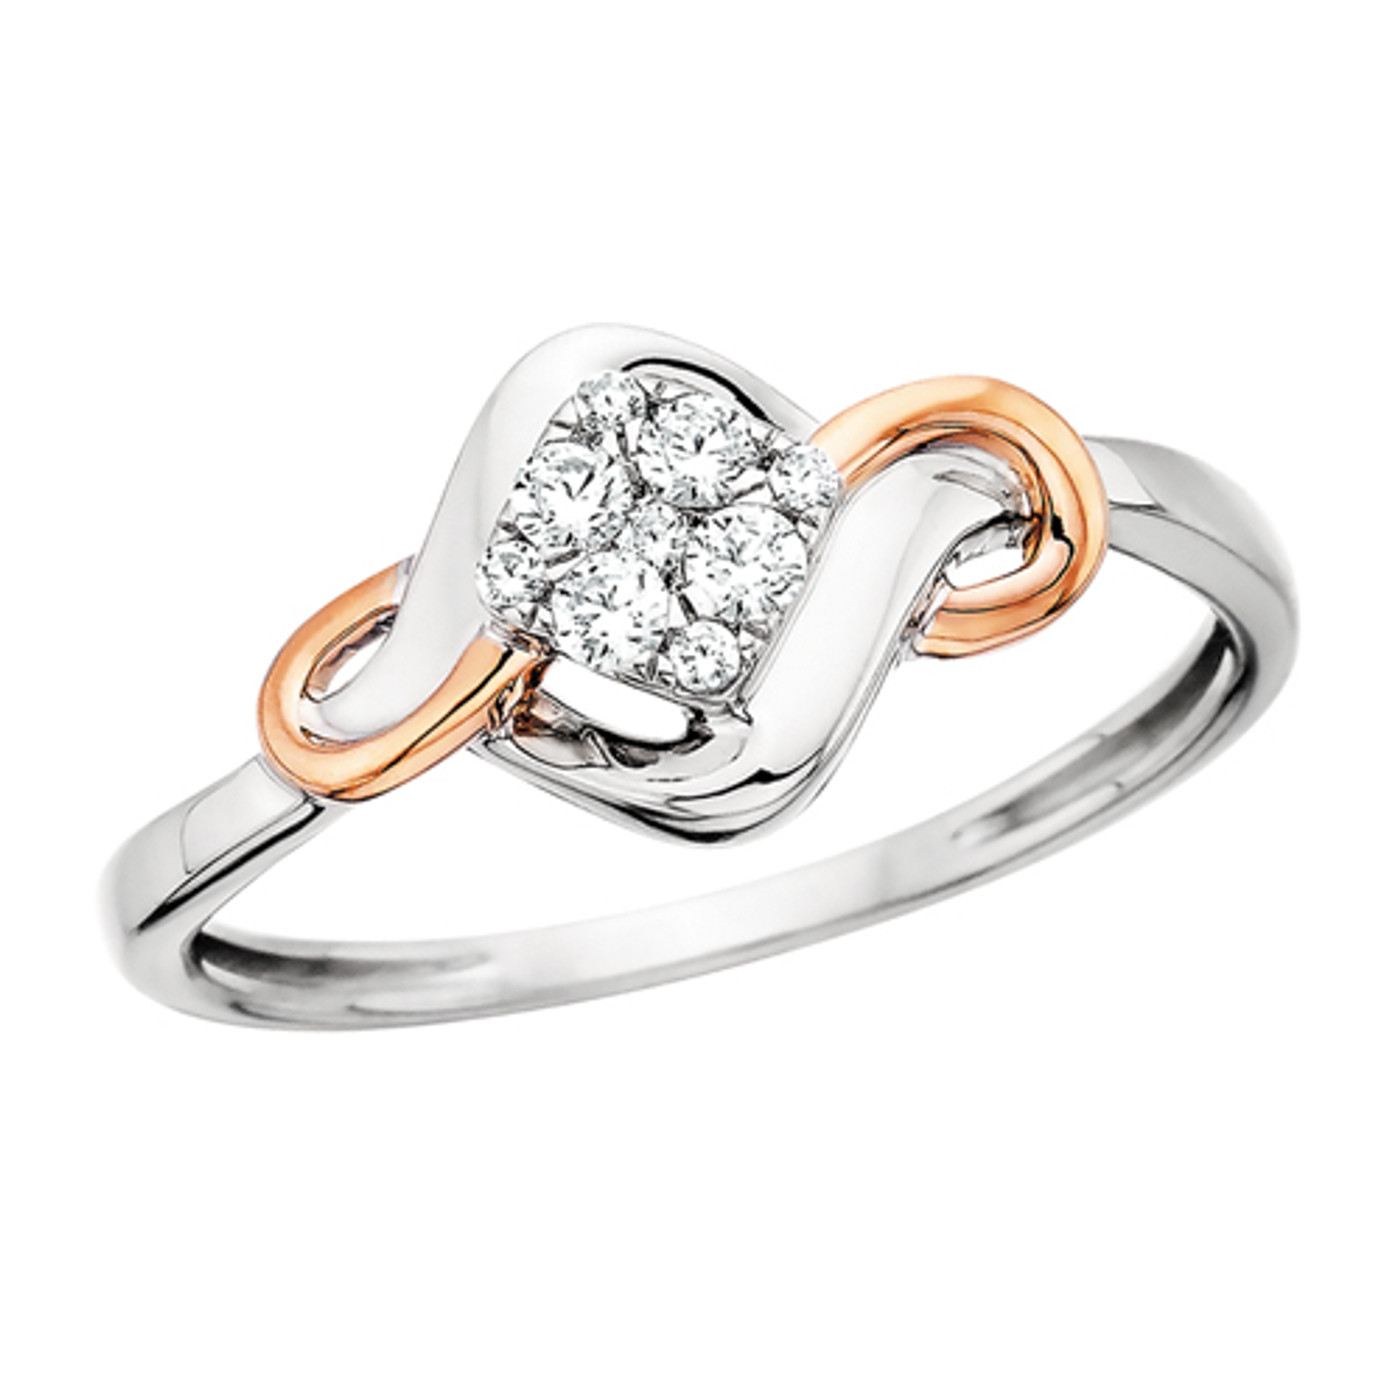 10K Two Tone White & Rose Gold Diamond Shape Cluster Ring 0.15 DTW